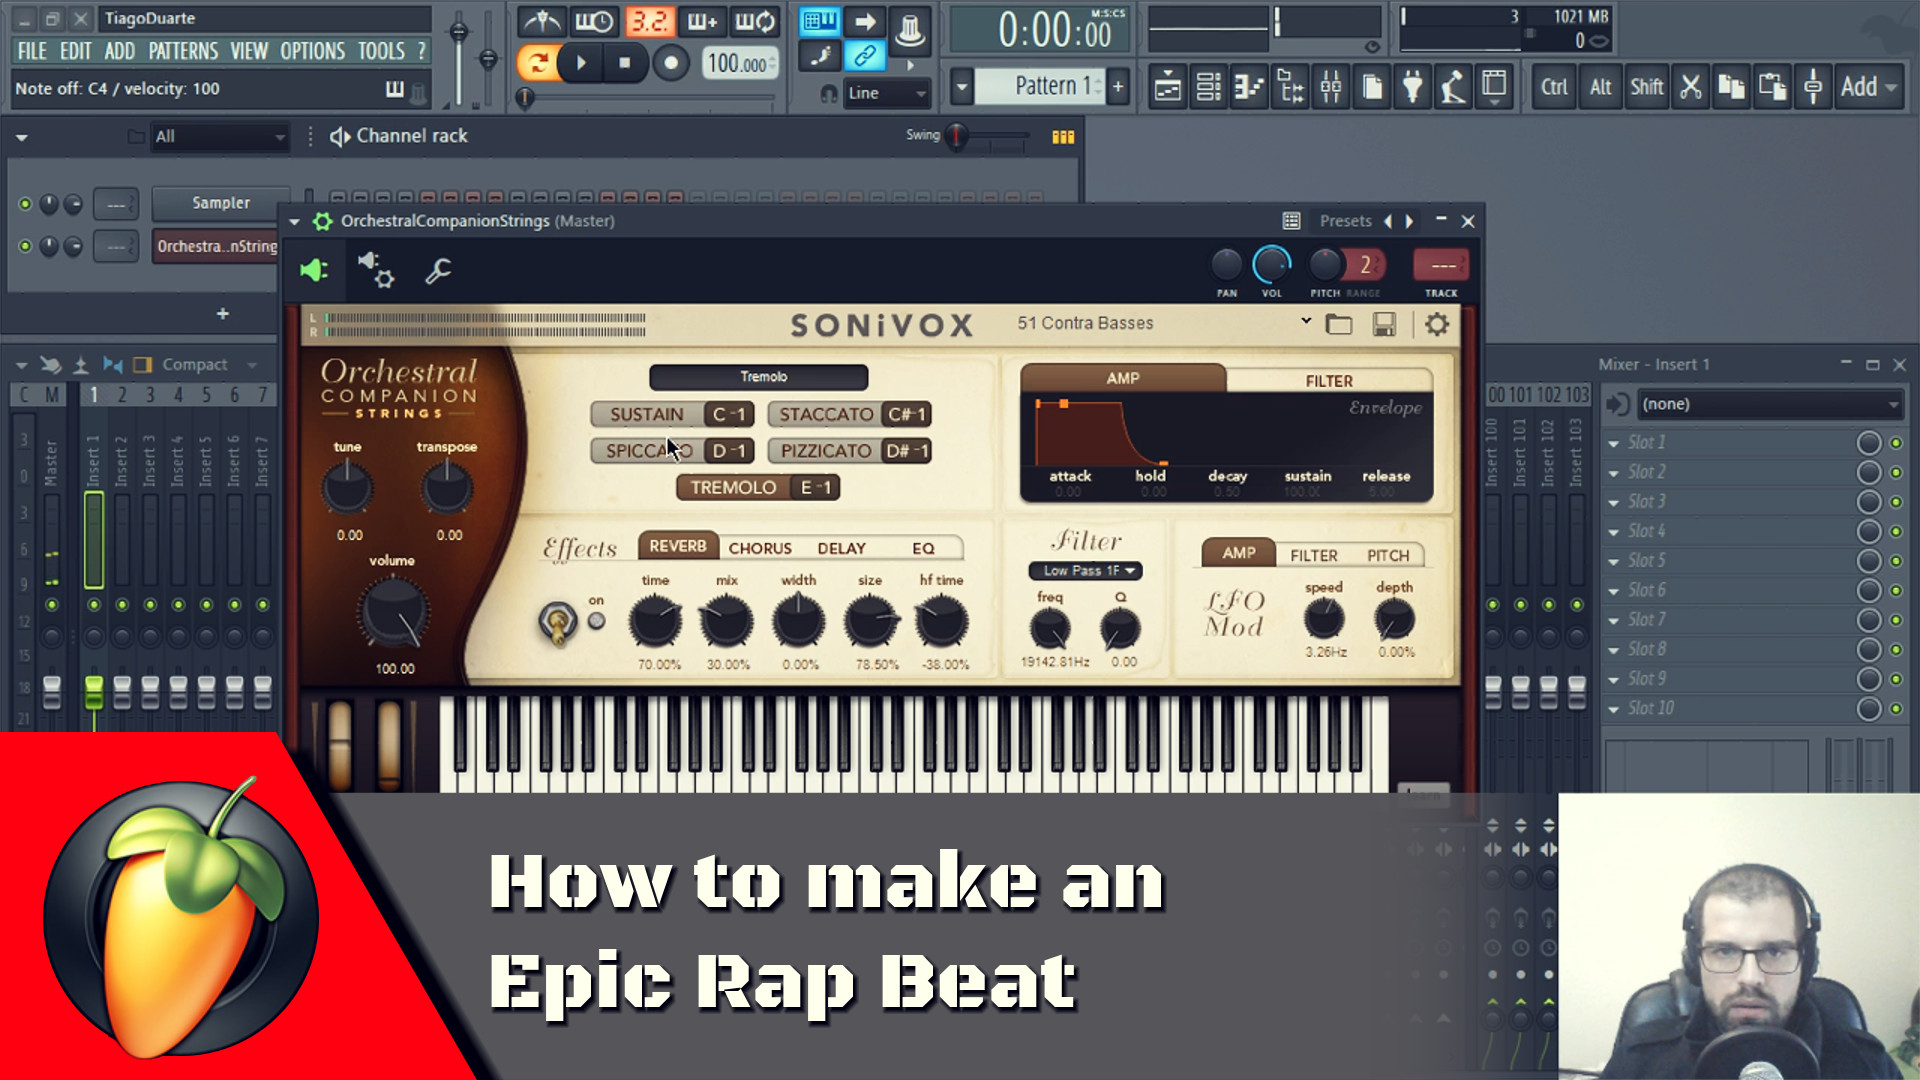 How to make a Epic Rap Beat